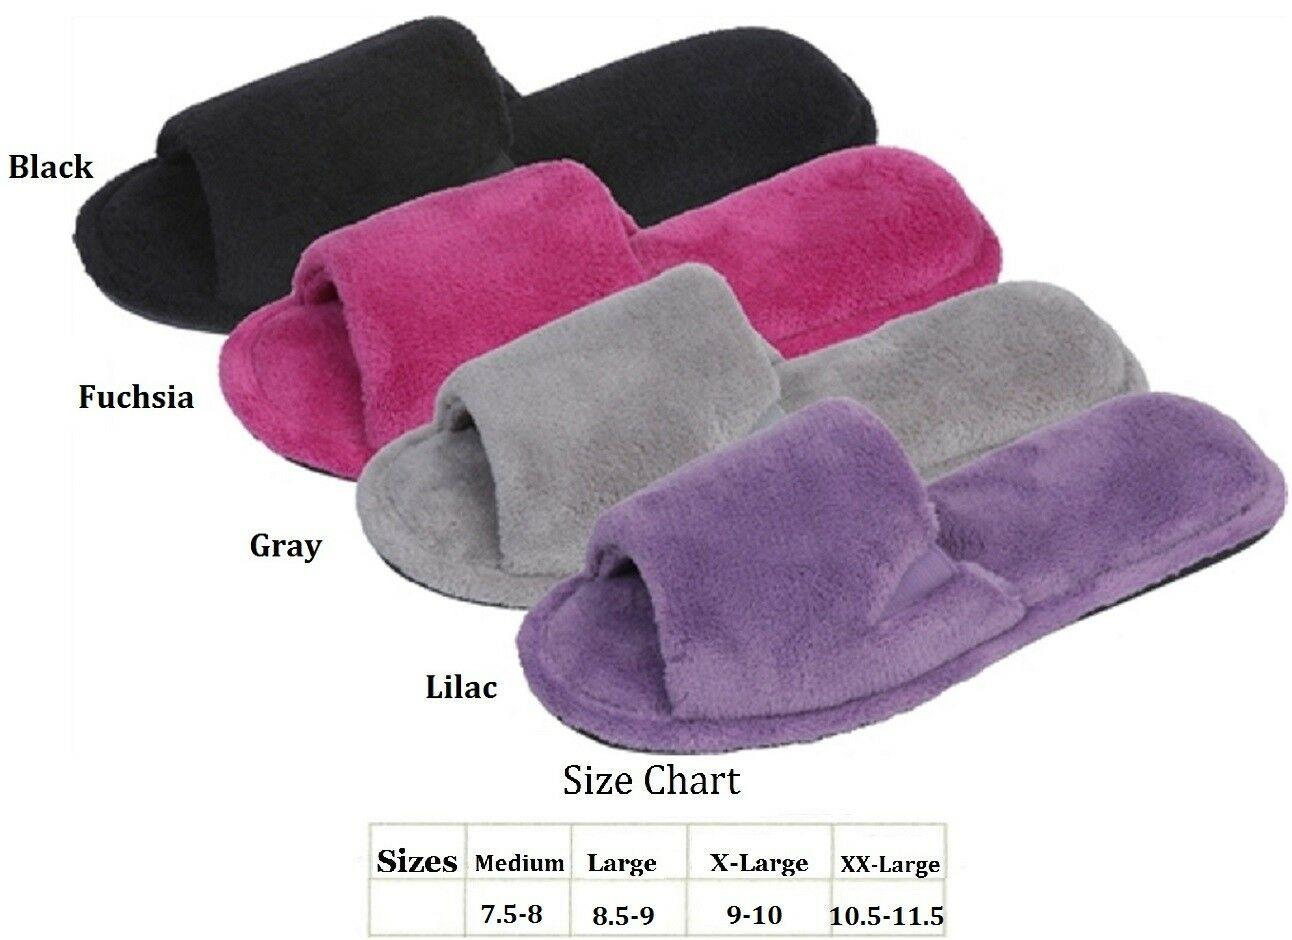 WOMENS TERRY PLUSH HOUSE SLIPPERS BLACK FUCHSIA LILAC GRAY M L XL XXL